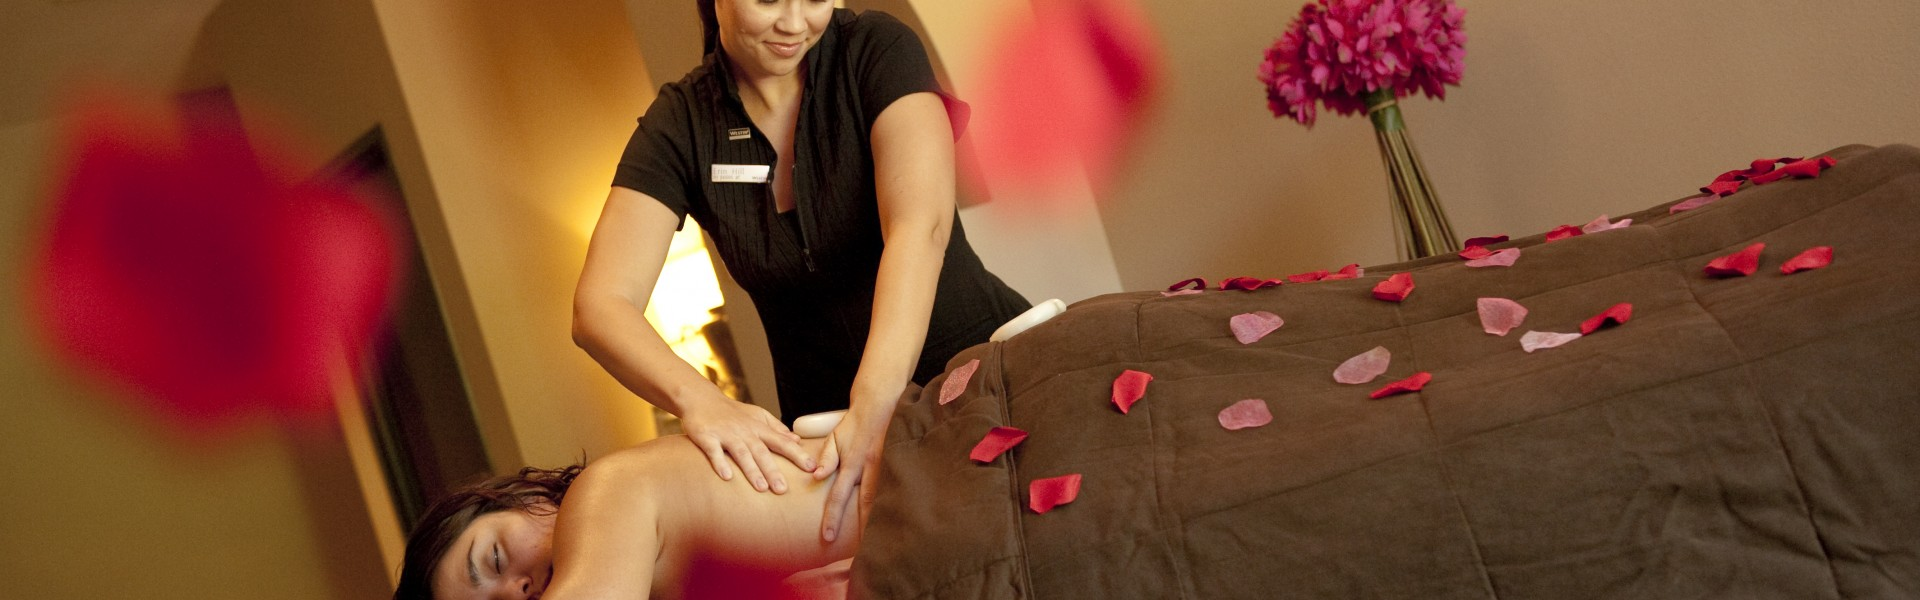 Relaxation - Discover Claremont - Day Spas & Salons near Ontario CA ...